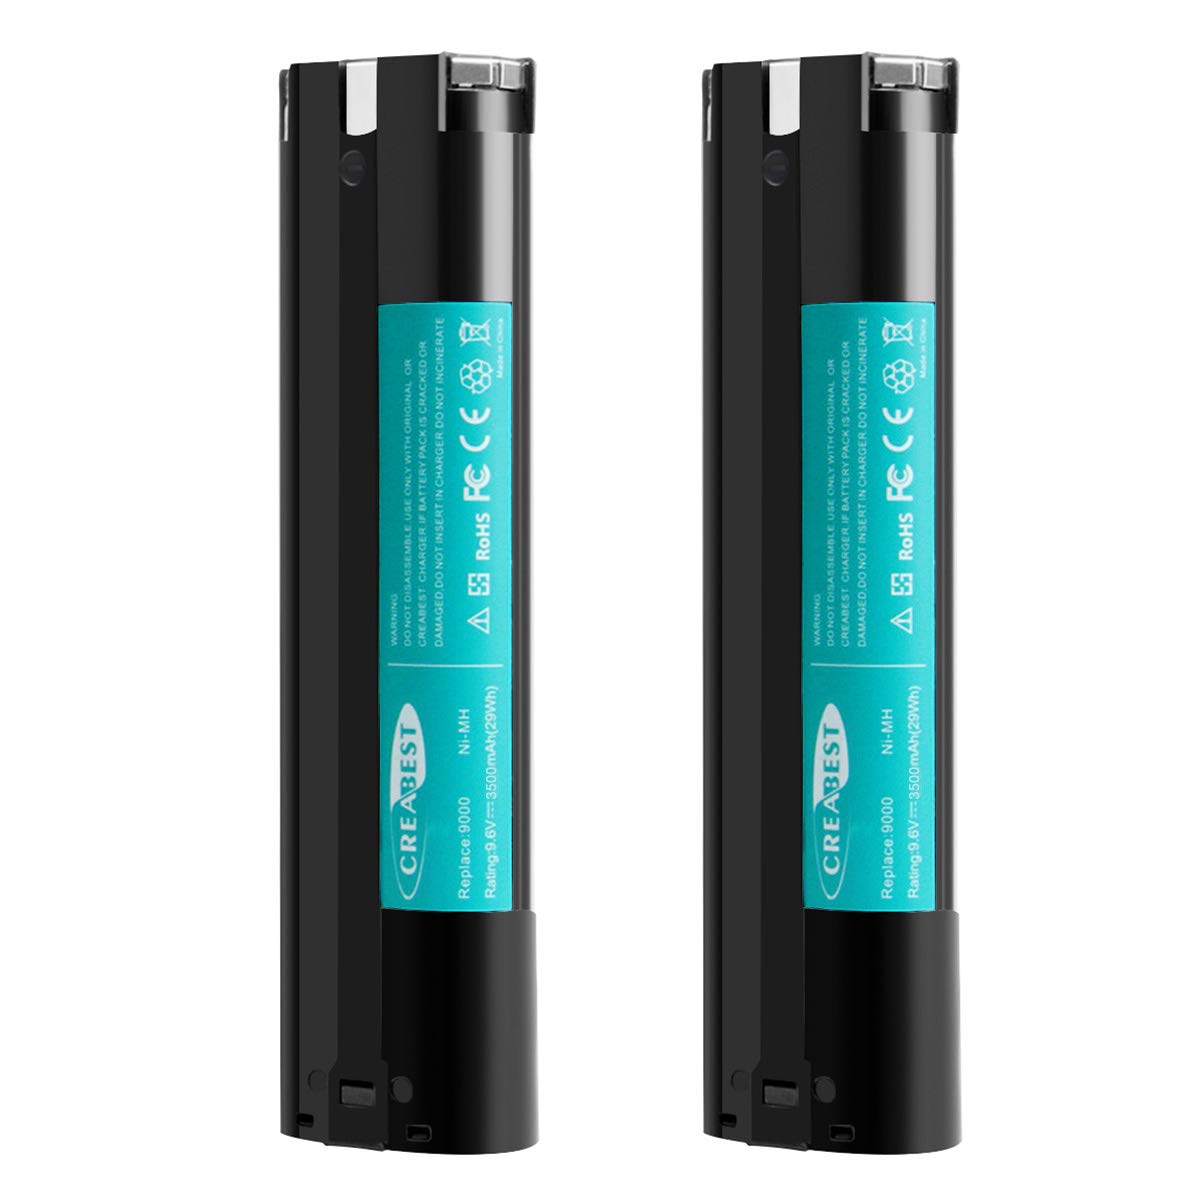 2Packs Creabest New 9.6V 3500mAh Compatible with Makita Replacement Battery 9000 9001 9002 9033 9600 96003 193890-9 192696-2 632007-4 6096D 6093D DA391D 6095D 5090D 4390D Ni-MH Battery Pack